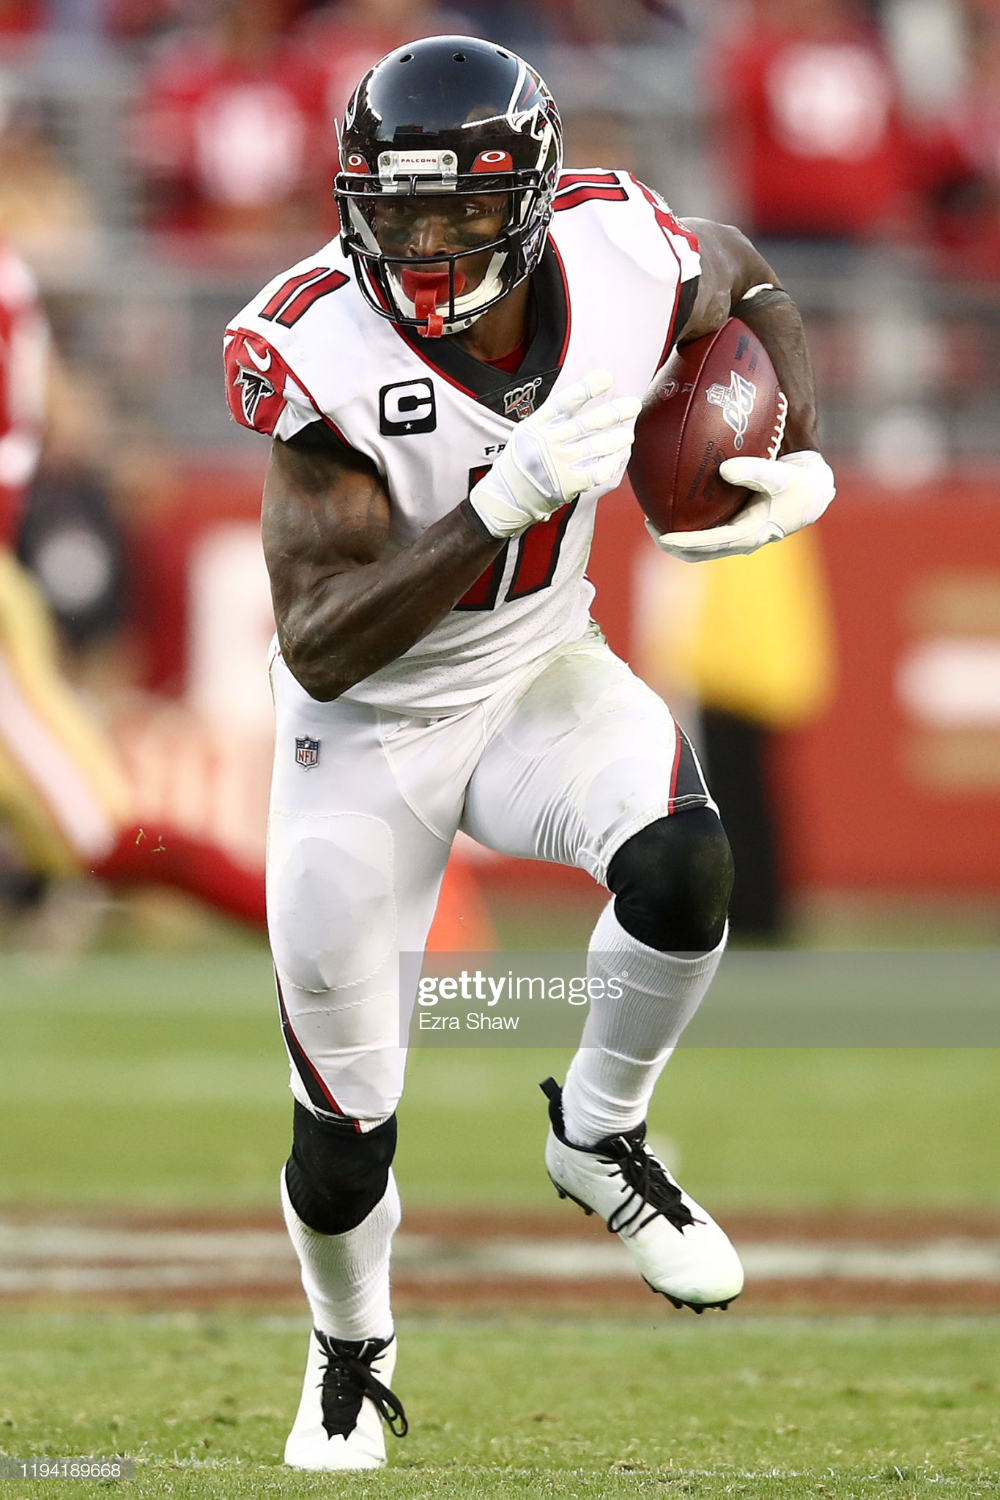 Wide Receiver Julio Jones Of The Atlanta Falcons Carries The Ball Julio Jones Atlanta Falcons Football Atlanta Falcons Players